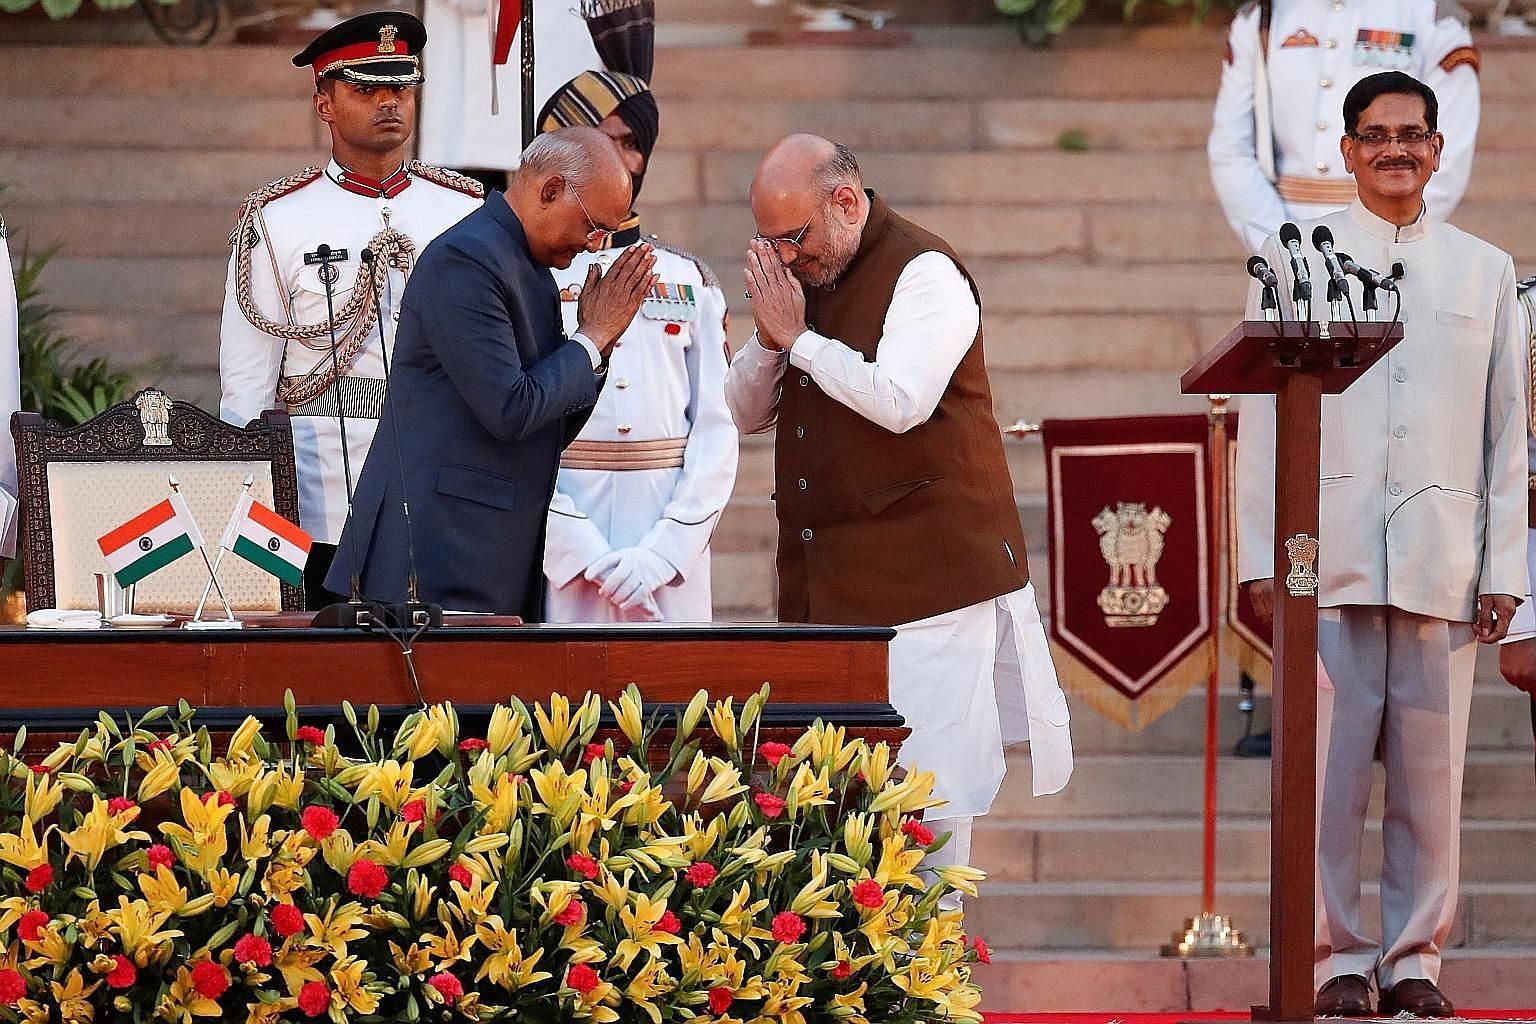 Indian President Ram Nath Kovind (left) greeting new Home Minister Amit Shah after his oath of office during the swearing-in ceremony at the Rashtrapati Bhawan, or presidential mansion, in New Delhi on Thursday. PHOTO: REUTERS